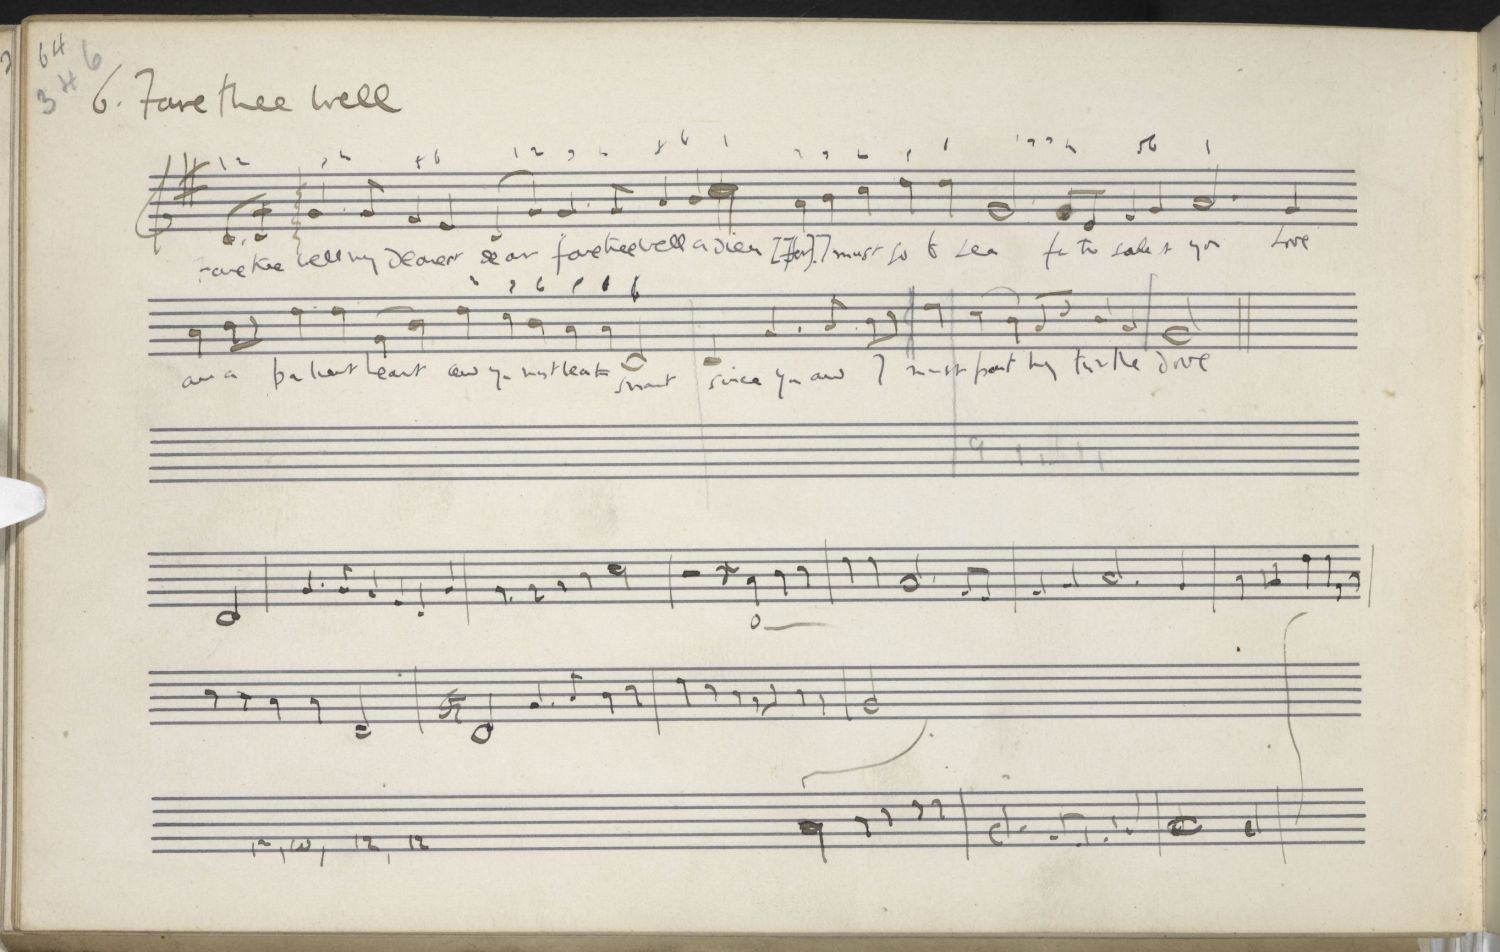 Fare thee well my dearest dear, noted by Vaughan Williams from Harriett Verrall, Horsham, Sussex, 22 Dec 1904; image copyright EFDSS.